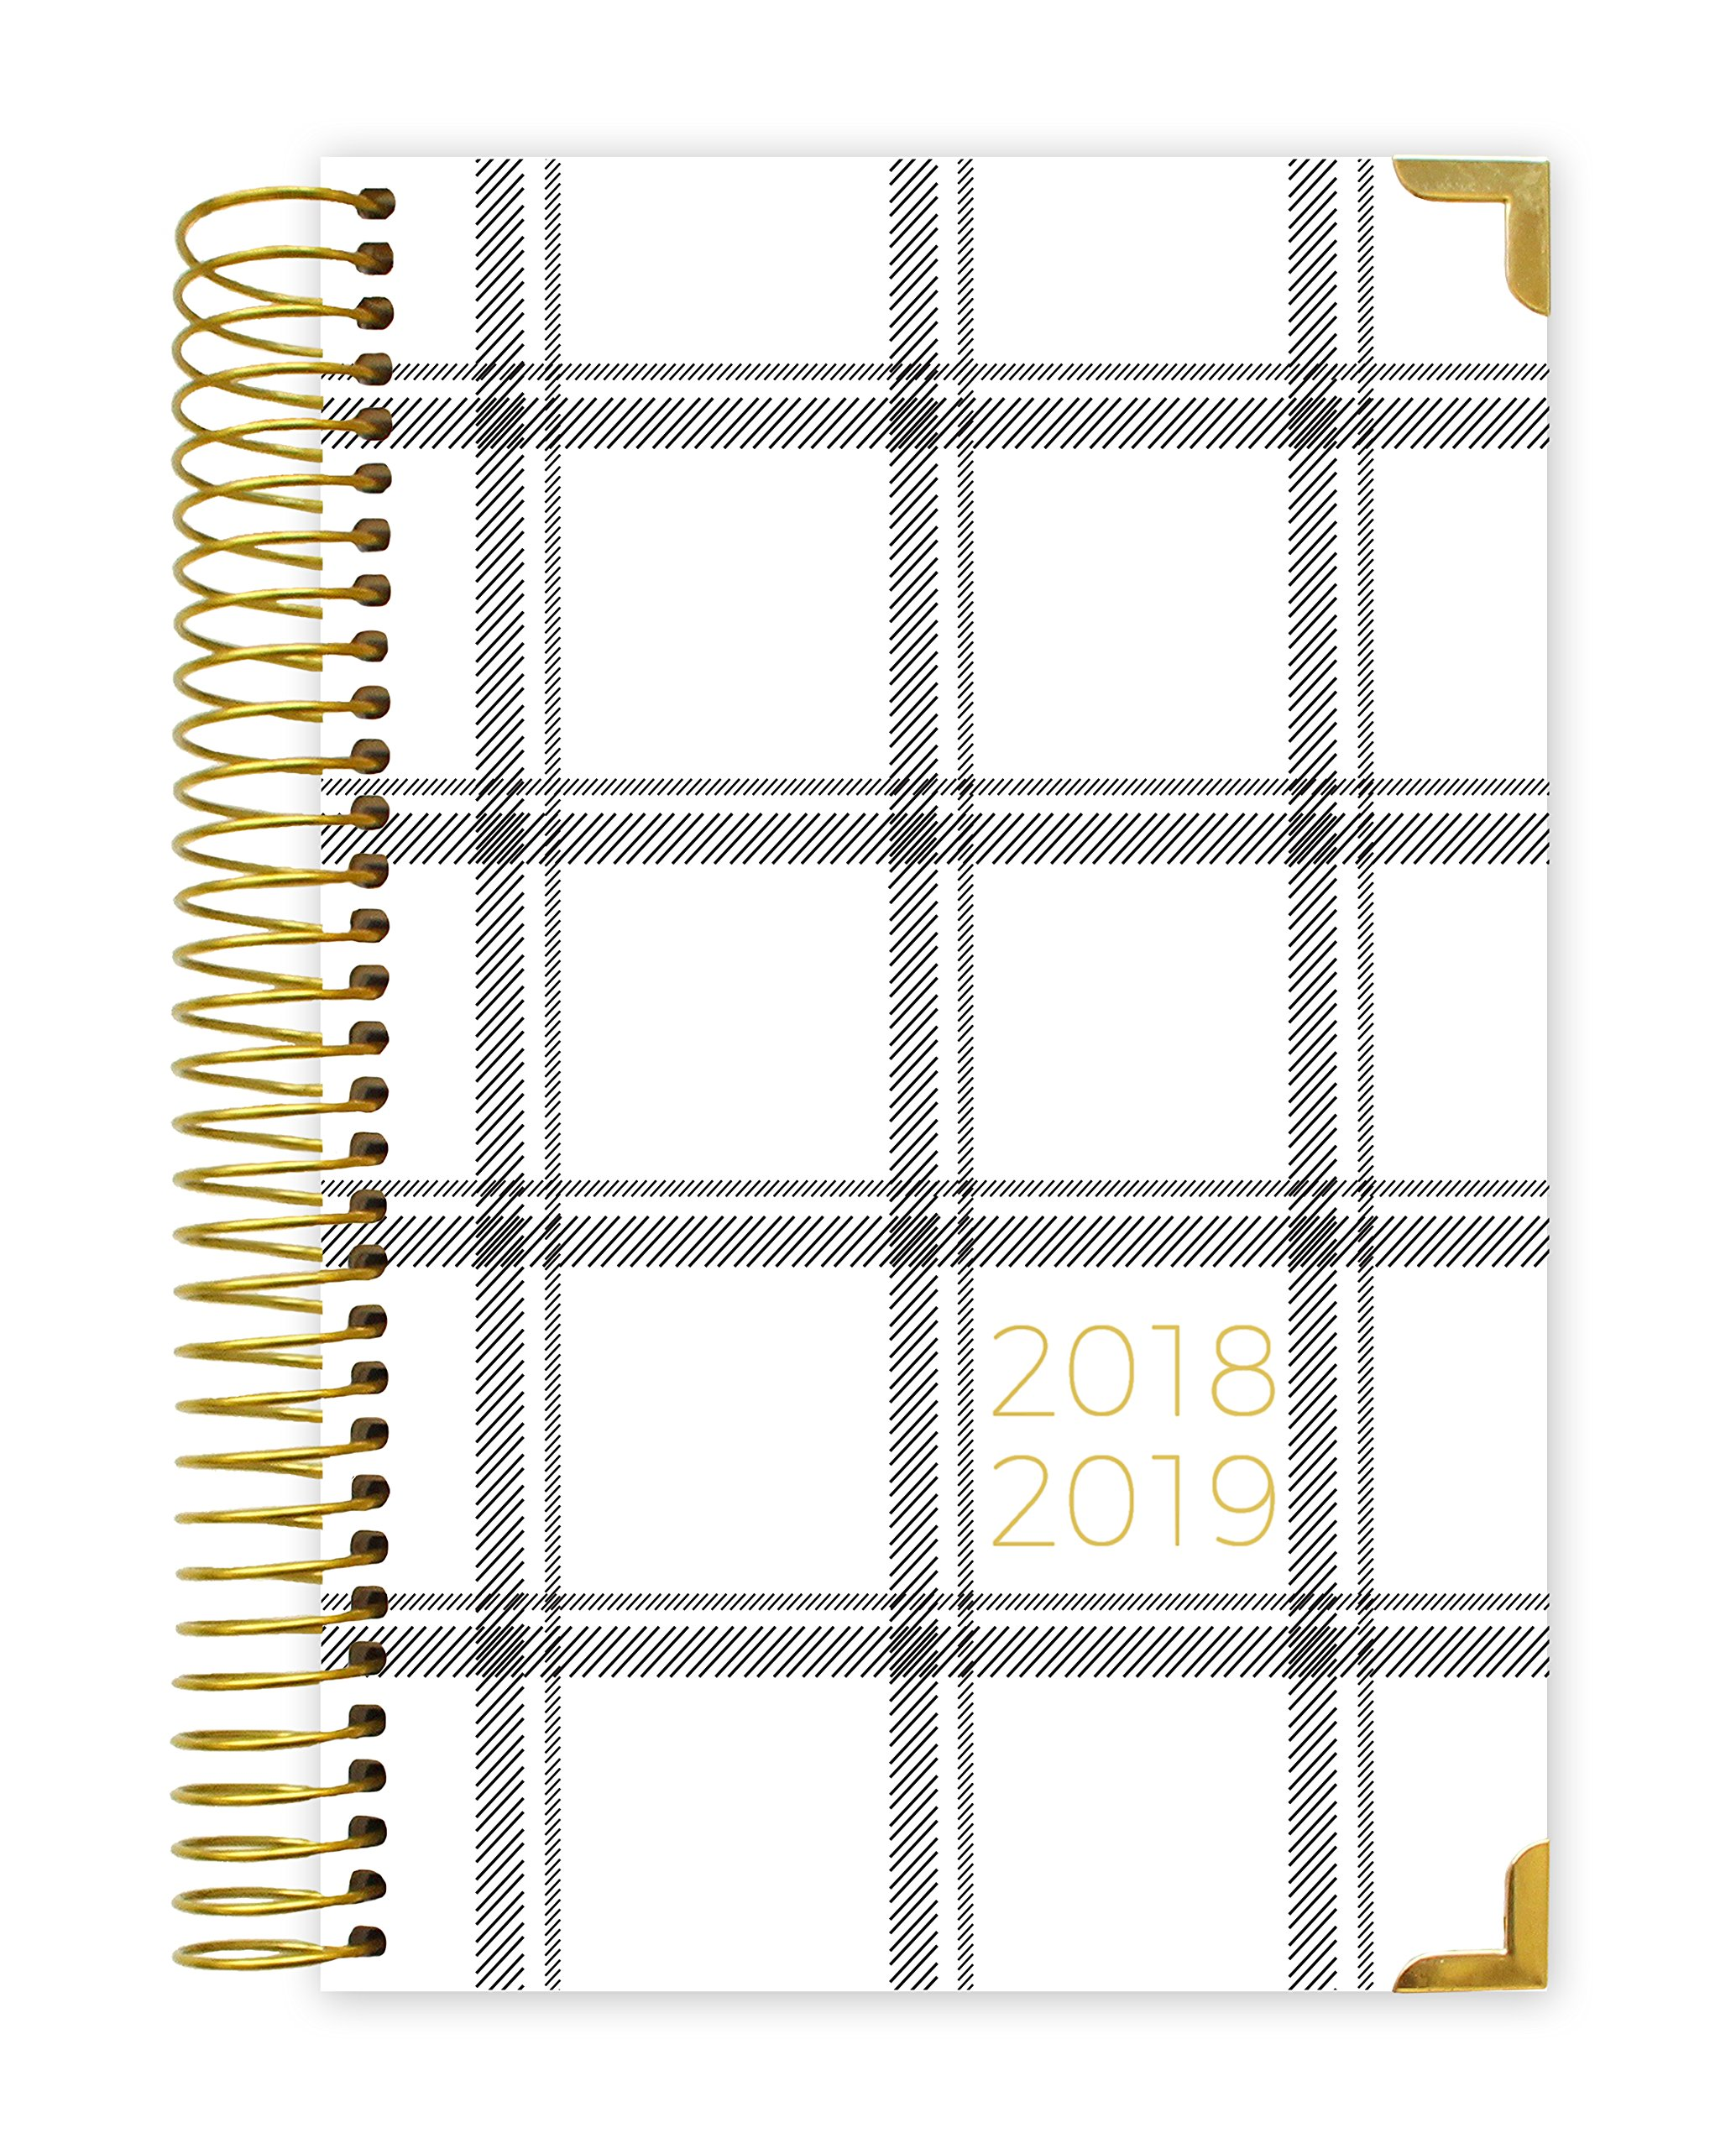 bloom daily planners 2018-2019 Academic Year HARDCOVER Day Planner - Monthly/Weekly Calendar Book - Inspirational Dated Agenda Organizer - (August 2018 - July 2019) - 6'' x 8.25'' - Plaid